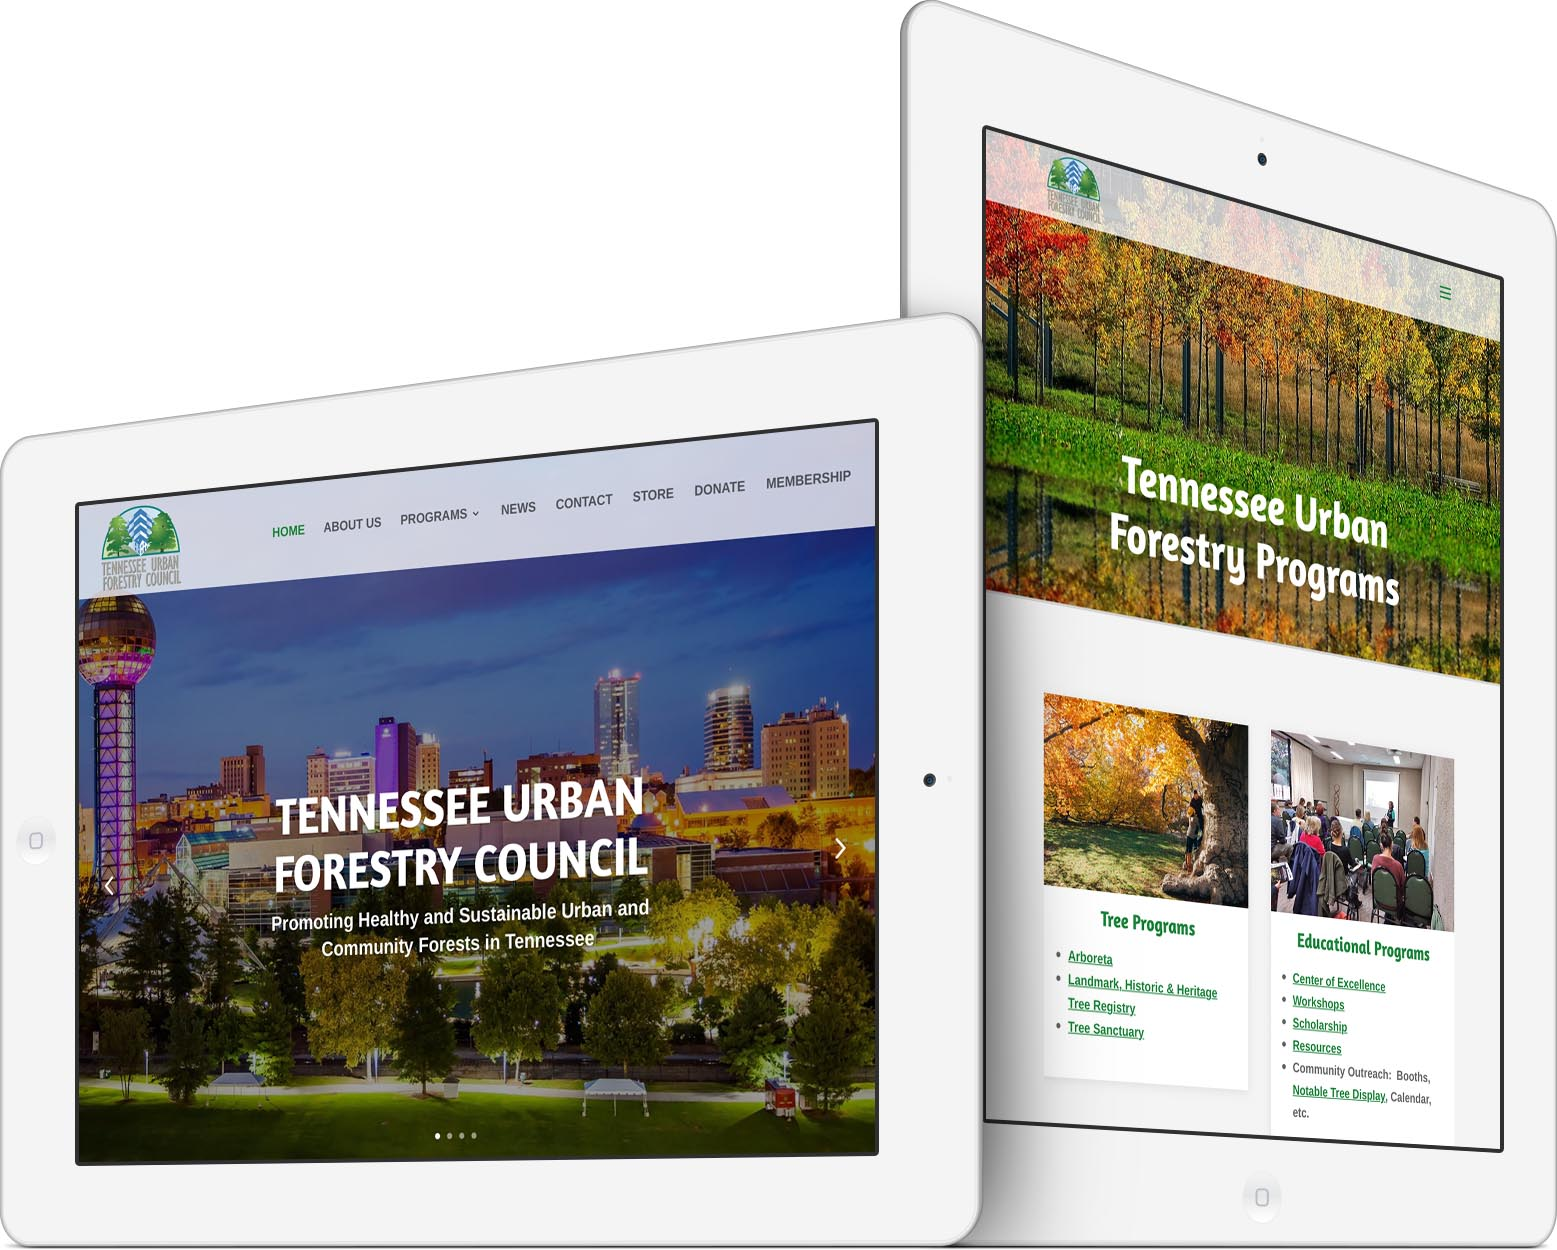 Tennessee Urban Forestry Council Responsive Web Design